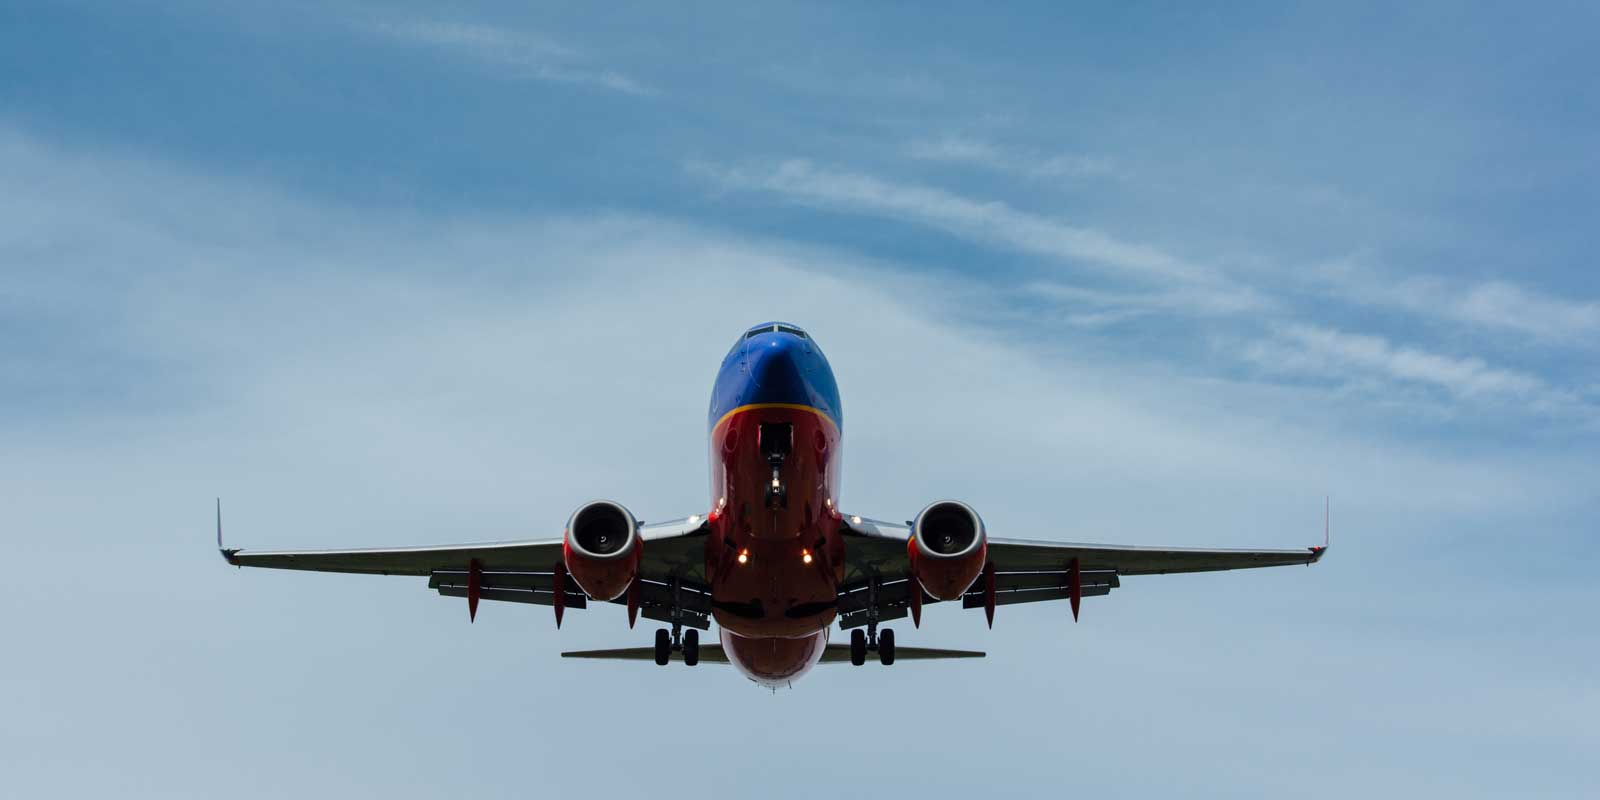 Overhead view of a Southwest Airlines plane flying above